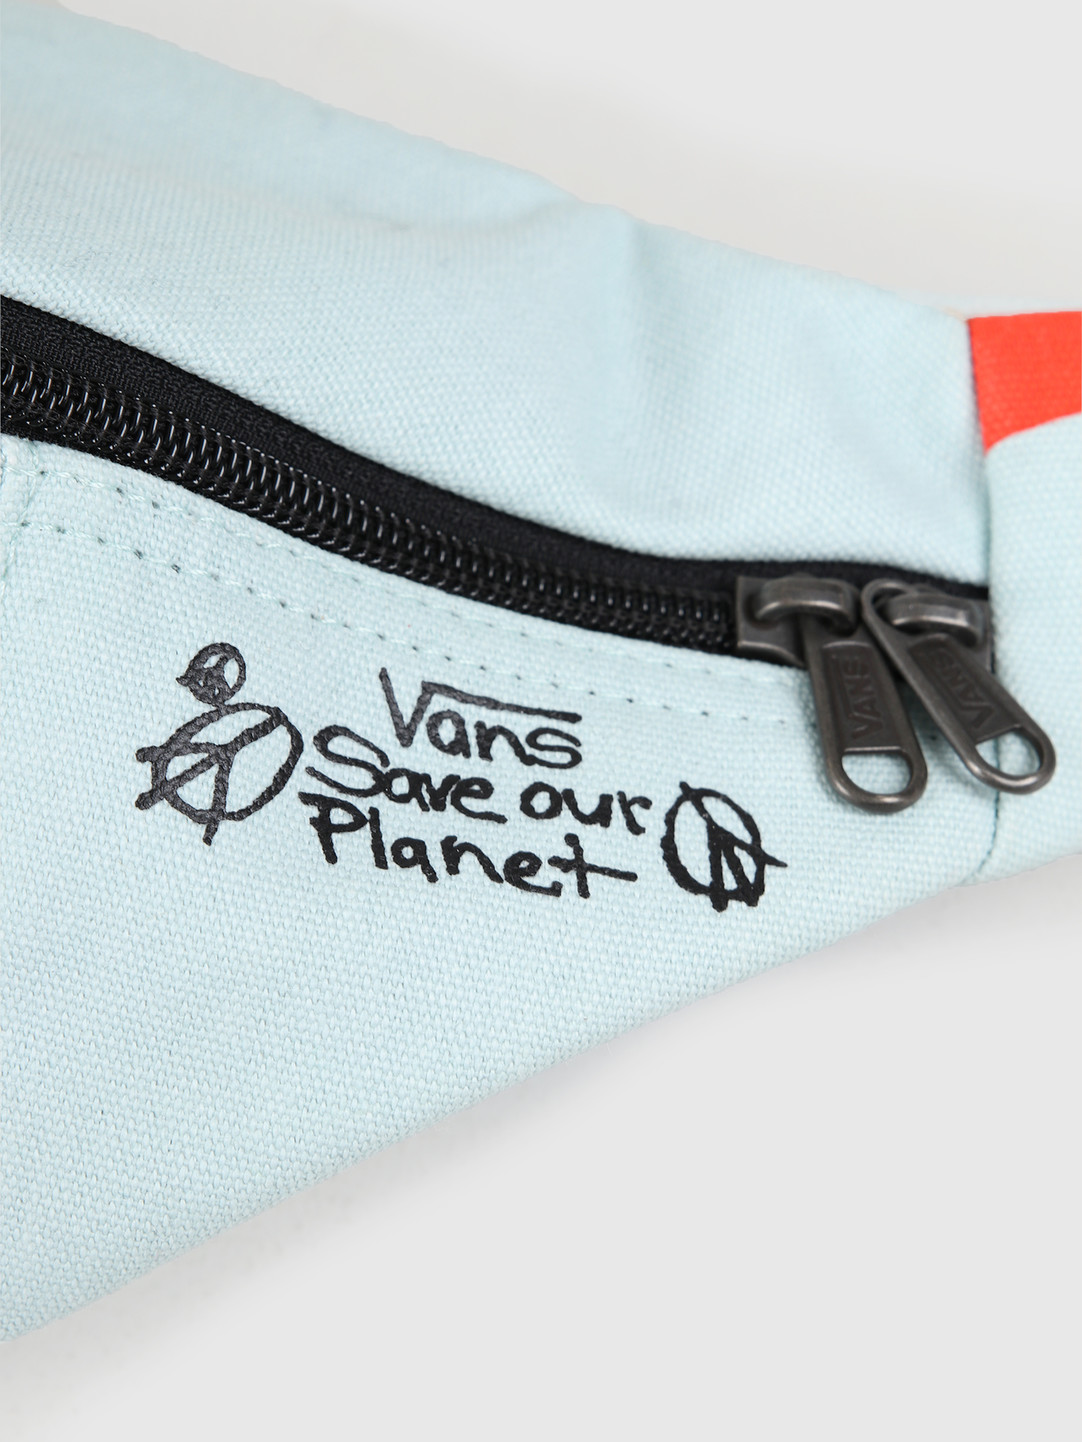 Vans Vans Ward Cross Body Pack Blue Save Our Planet VN0A2ZXXZSD1